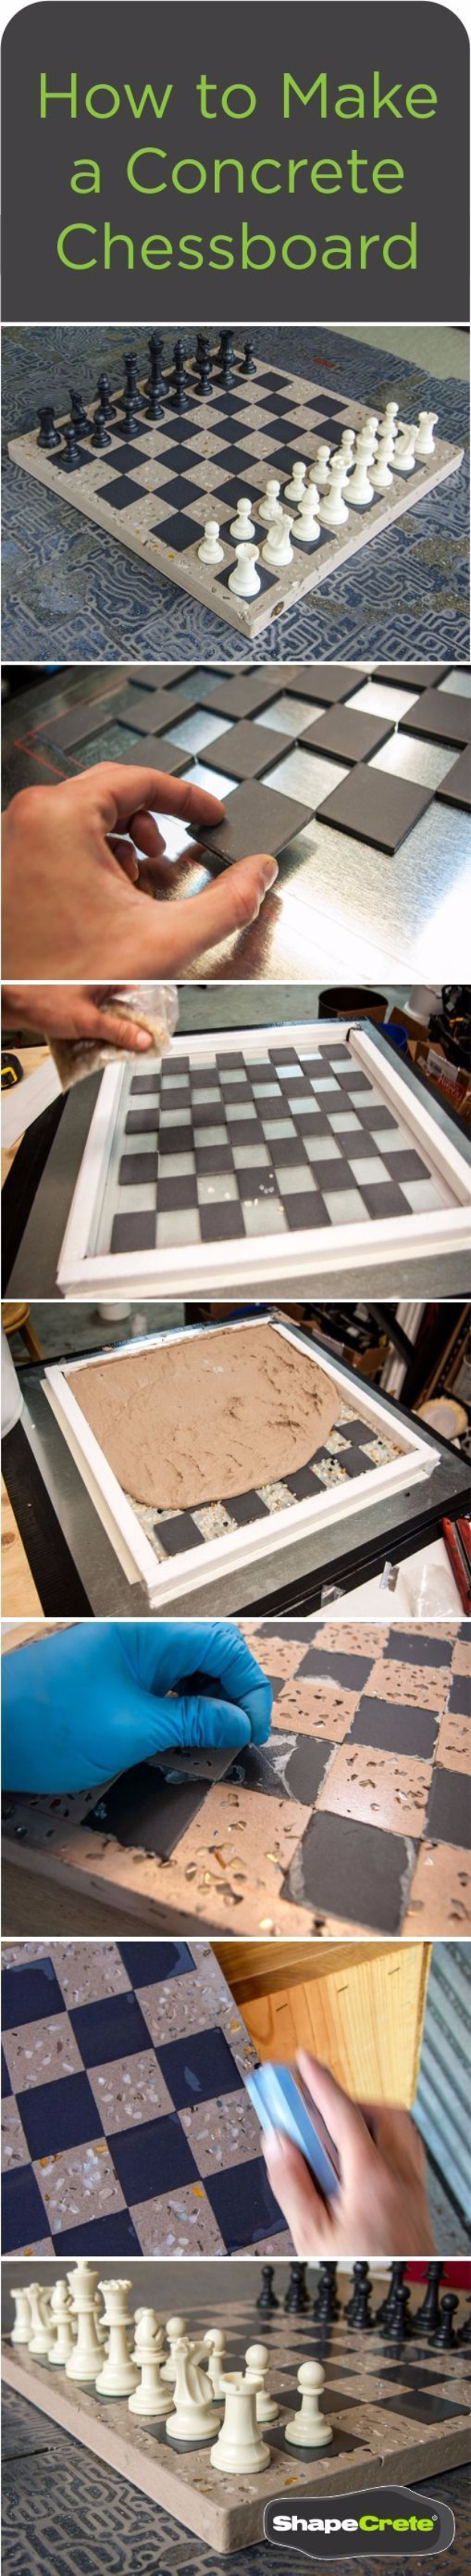 DIY Projects Made With Concrete - Concrete Chessboard - Quick and Easy DIY Concrete Crafts - Cheap and creative countertops and ideas for floors, patio and porch decor, tables, planters, vases, frames, jewelry holder, home decor and DIY gifts